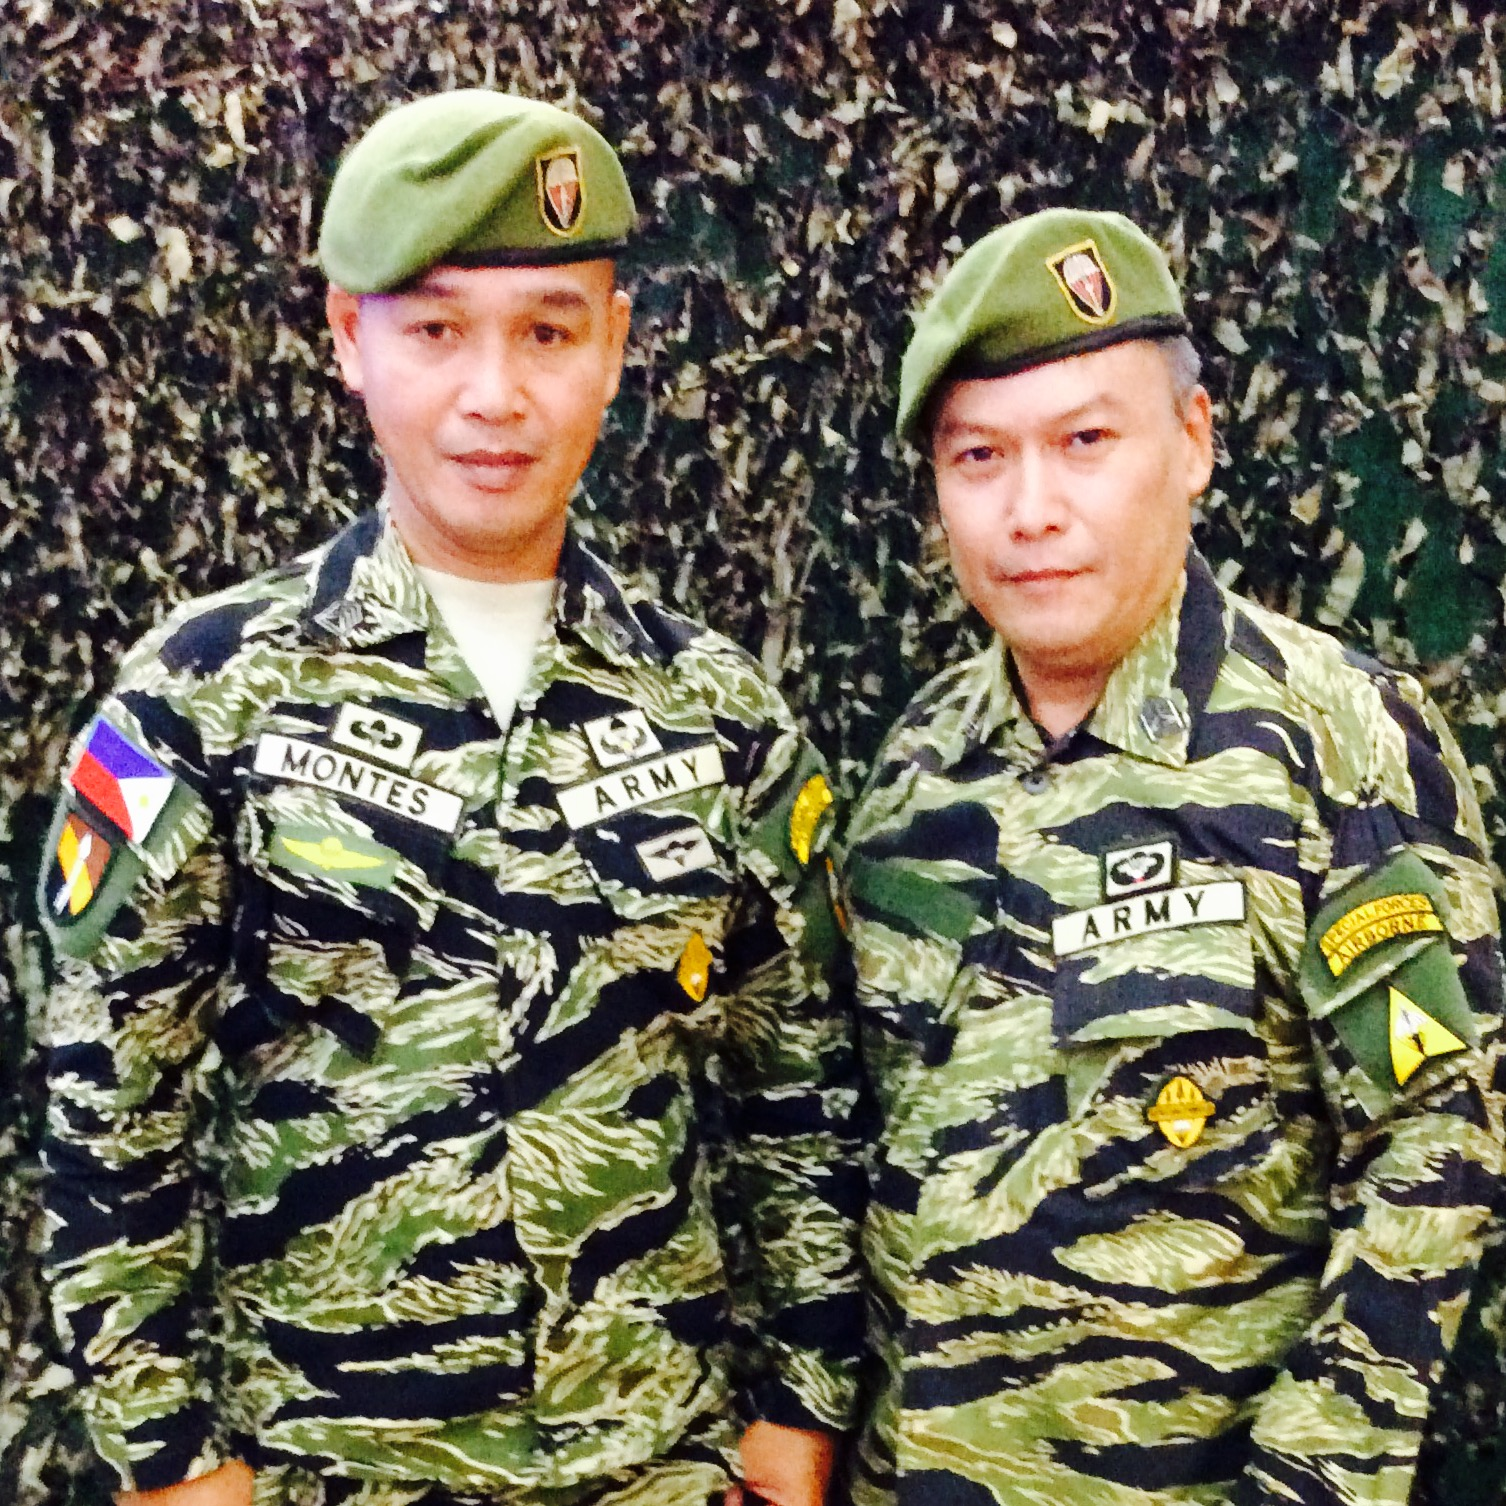 FILIPINOS CELEBRATE ARMED FORCES WEEK